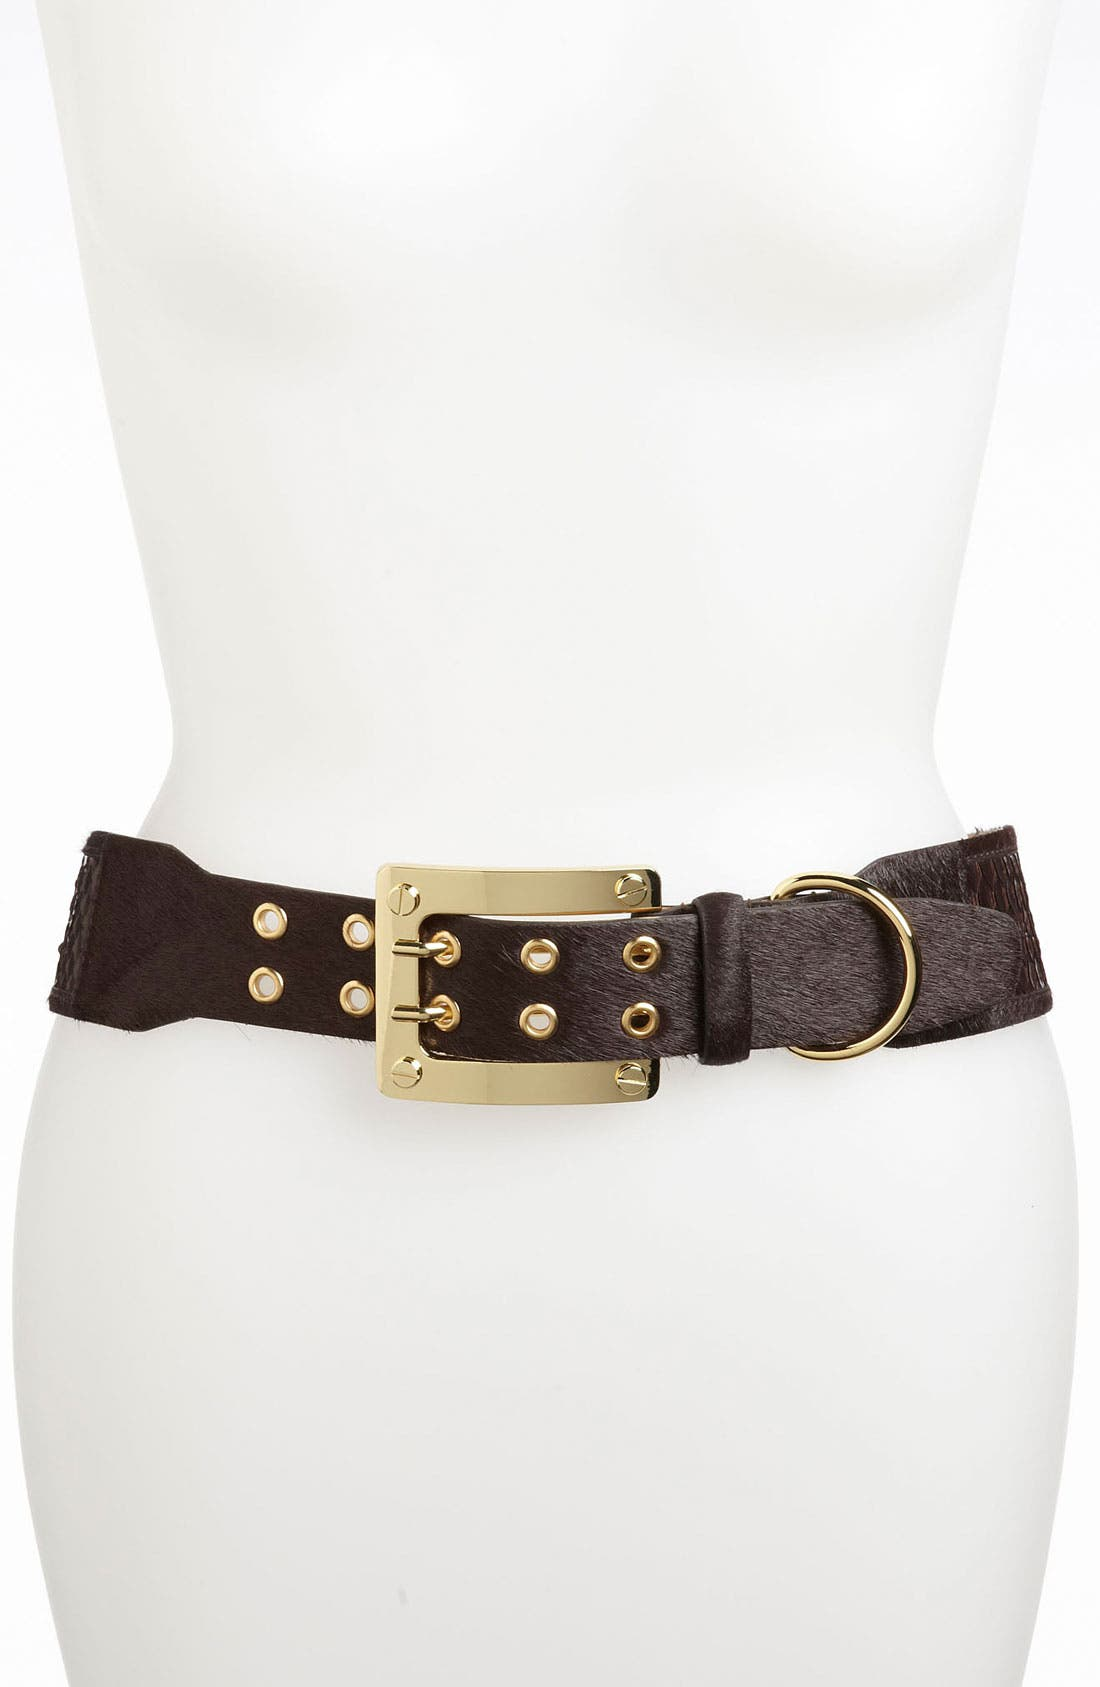 Alternate Image 1 Selected - Rachel Zoe Calf Hair Belt